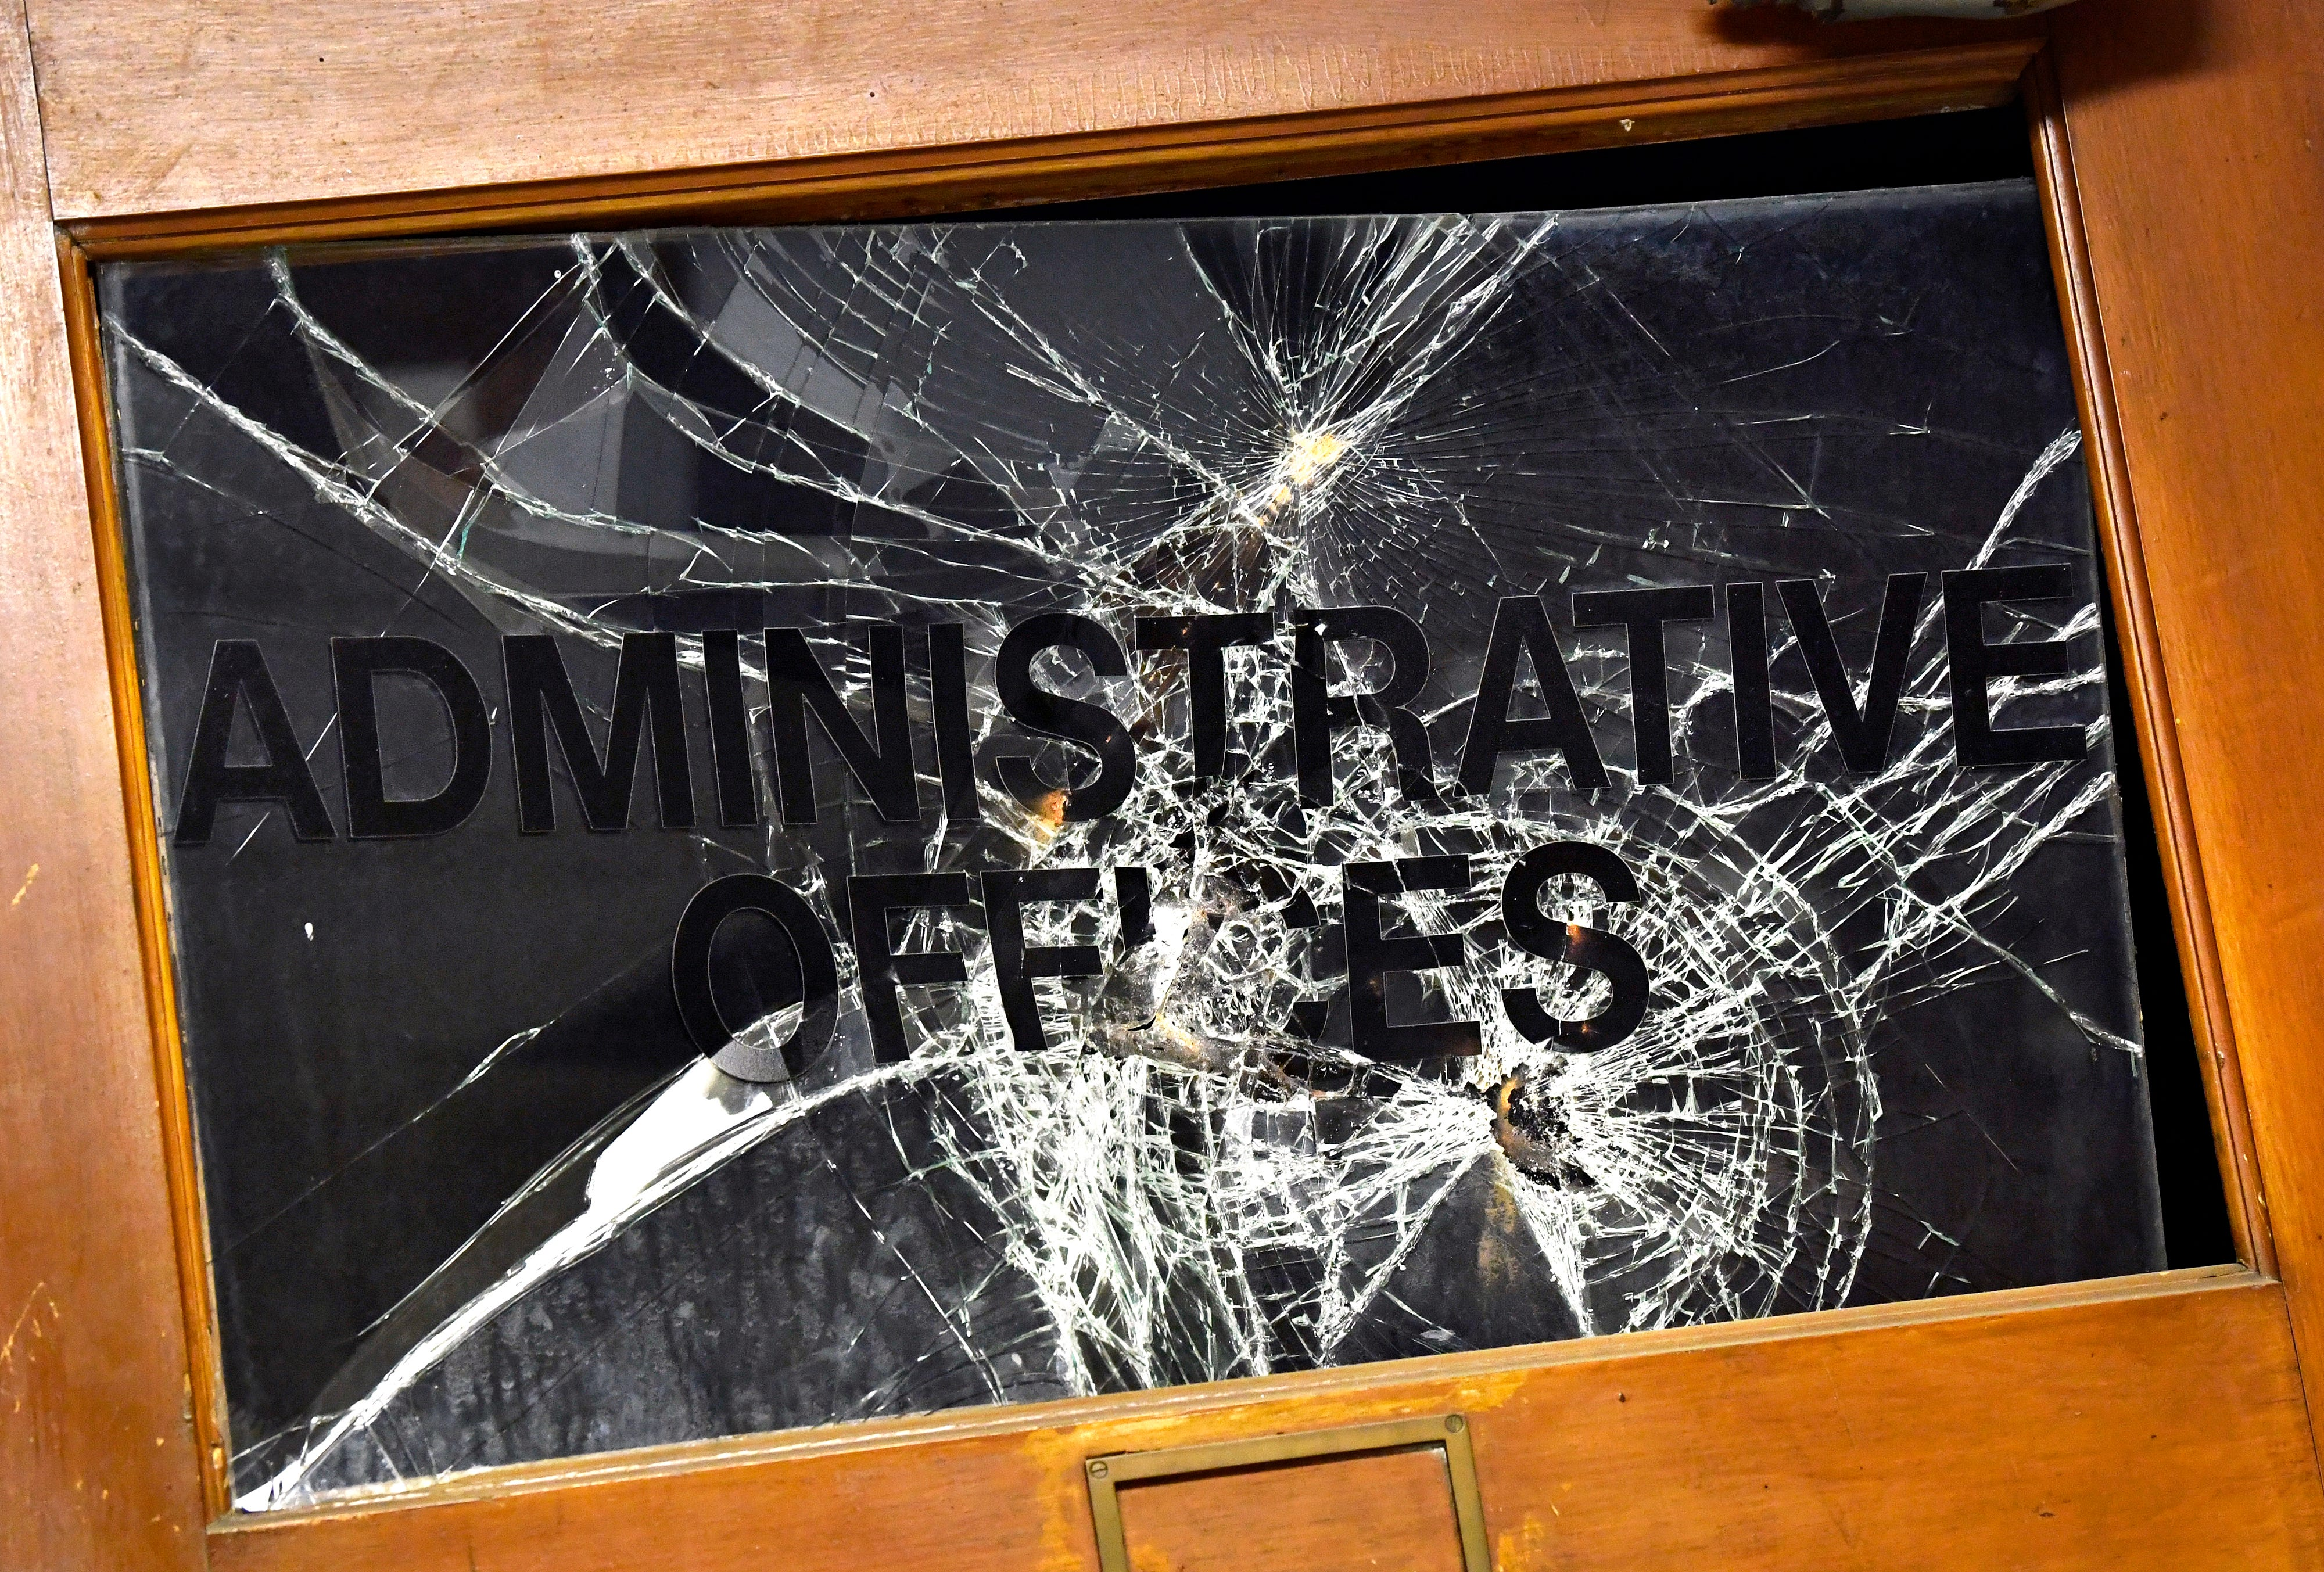 The glass on the administrative offices door at the former Lincoln Middle School. Graffiti and spray paint, as well as other damage, are spread intermittently throughout the 96-year-old building.